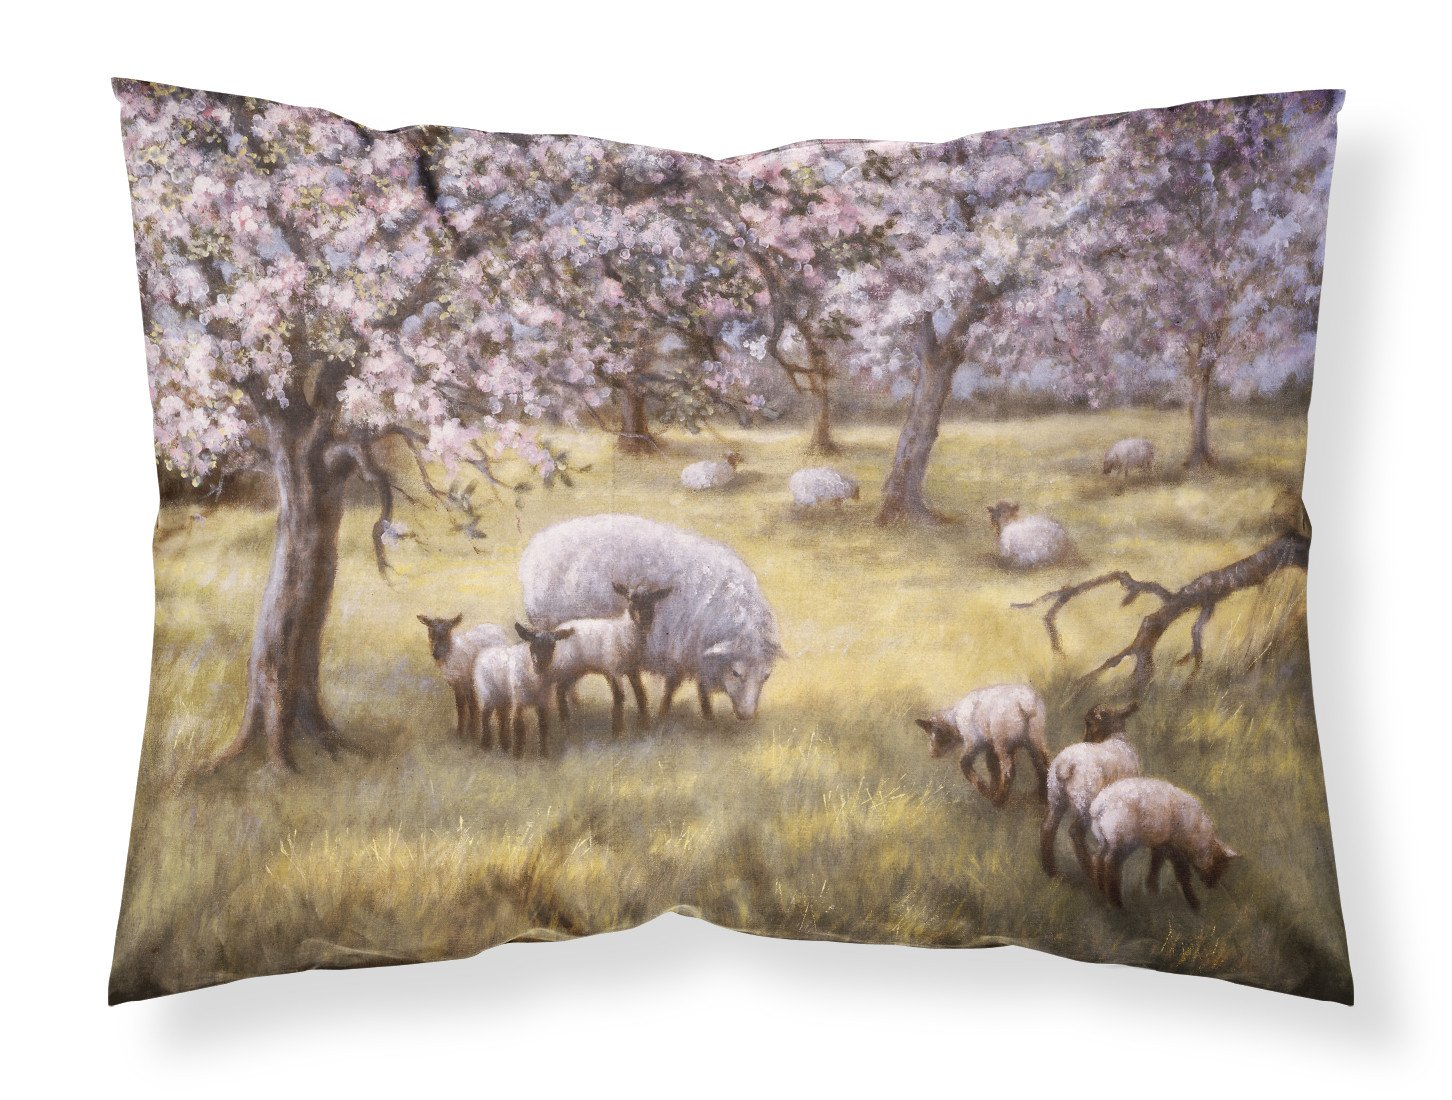 Sheep by Daphne Baxter Fabric Standard Pillowcase BDBA0133PILLOWCASE by Caroline's Treasures